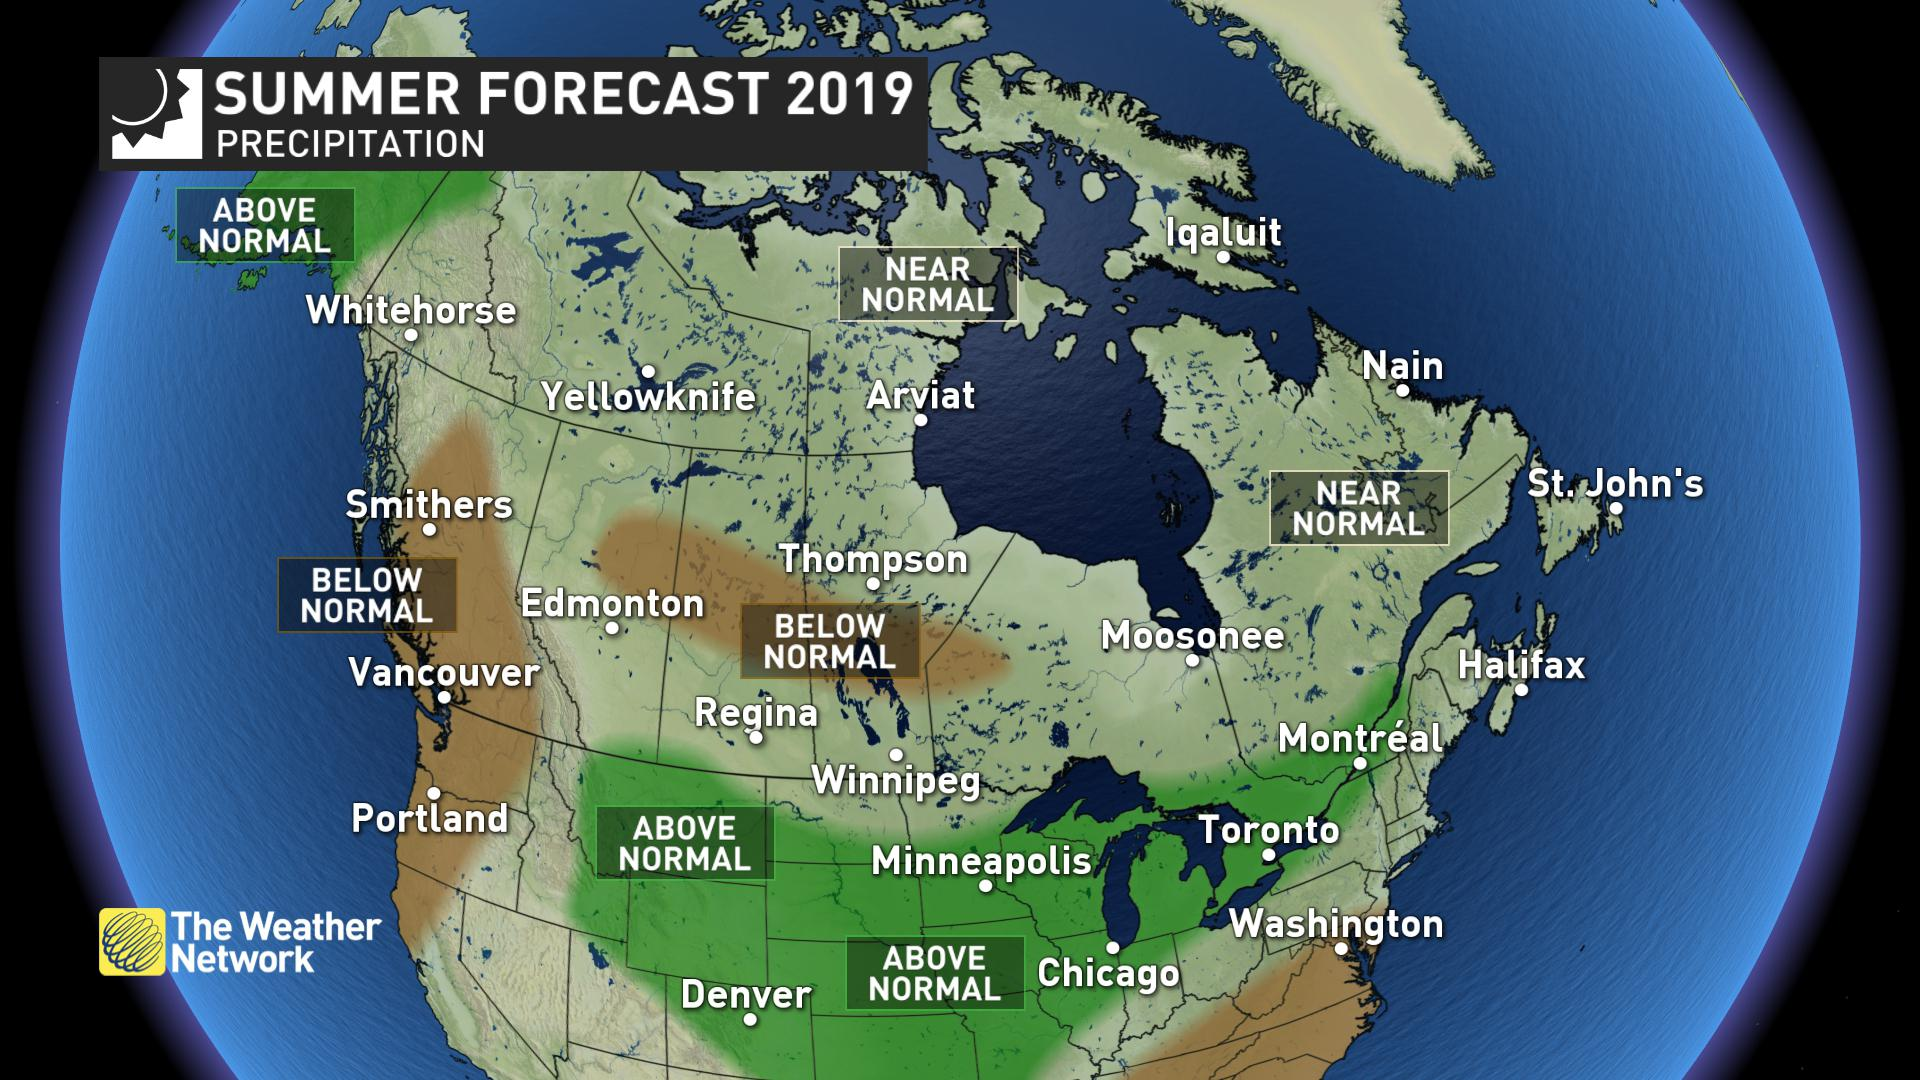 Summer weather forecast suggests cooler temperatures across Canada